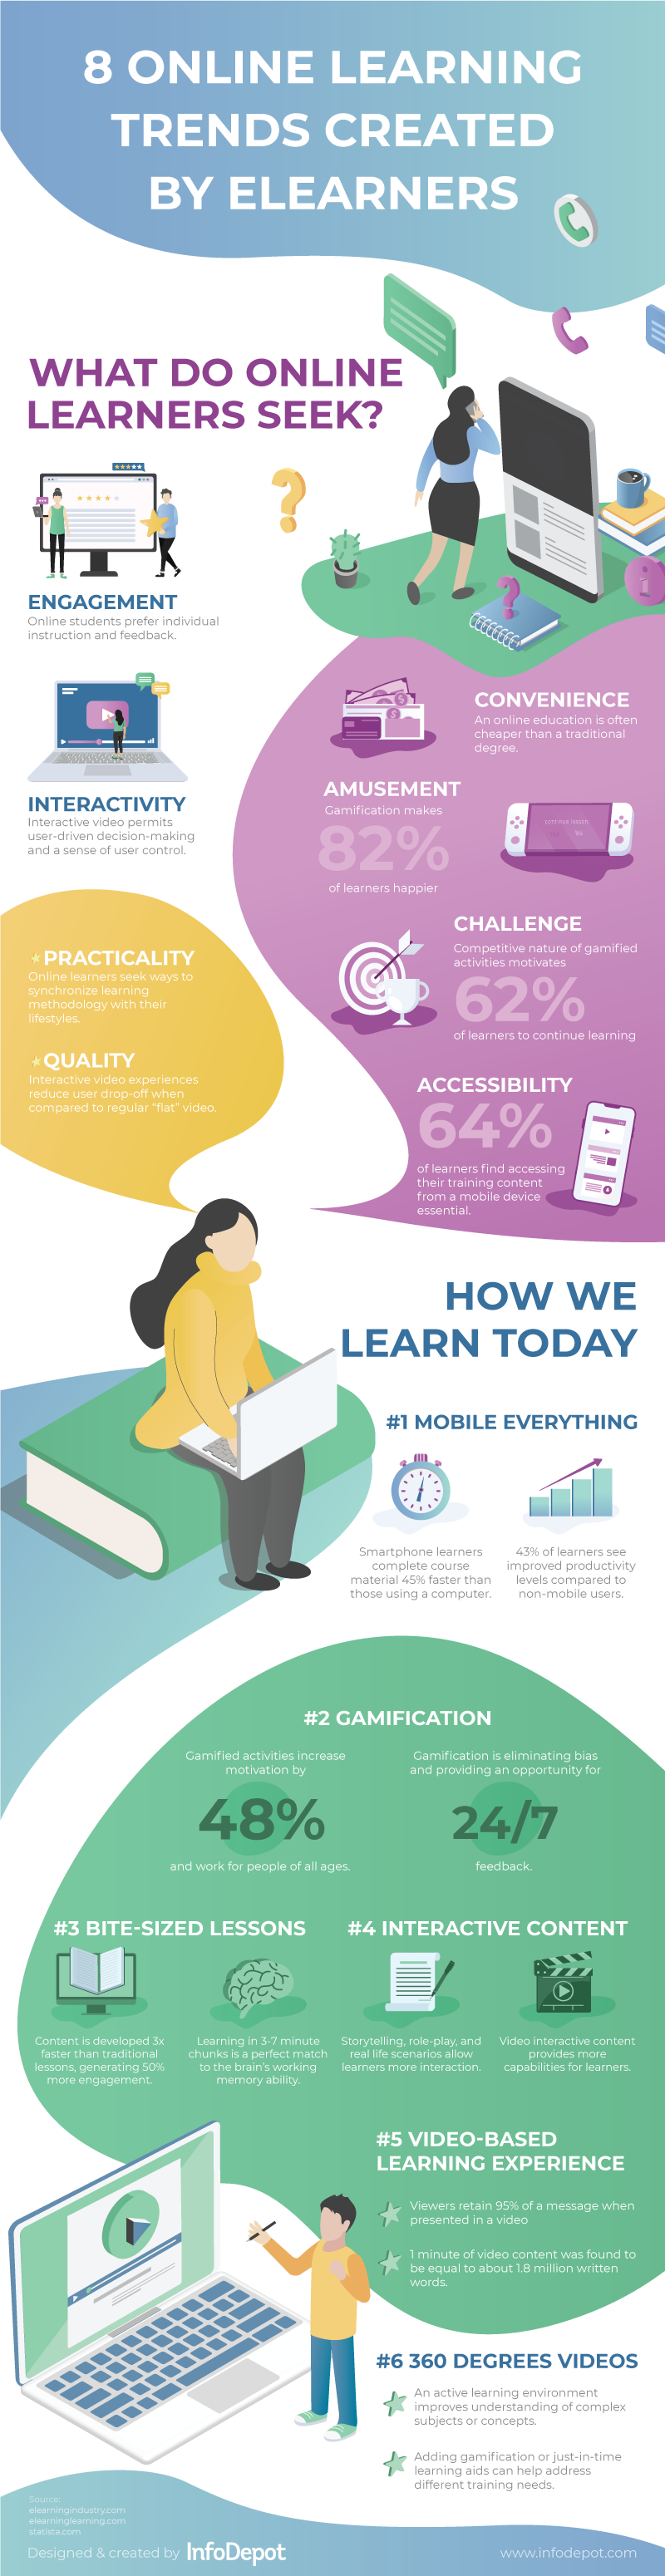 Online Learning Trends Created By eLearners